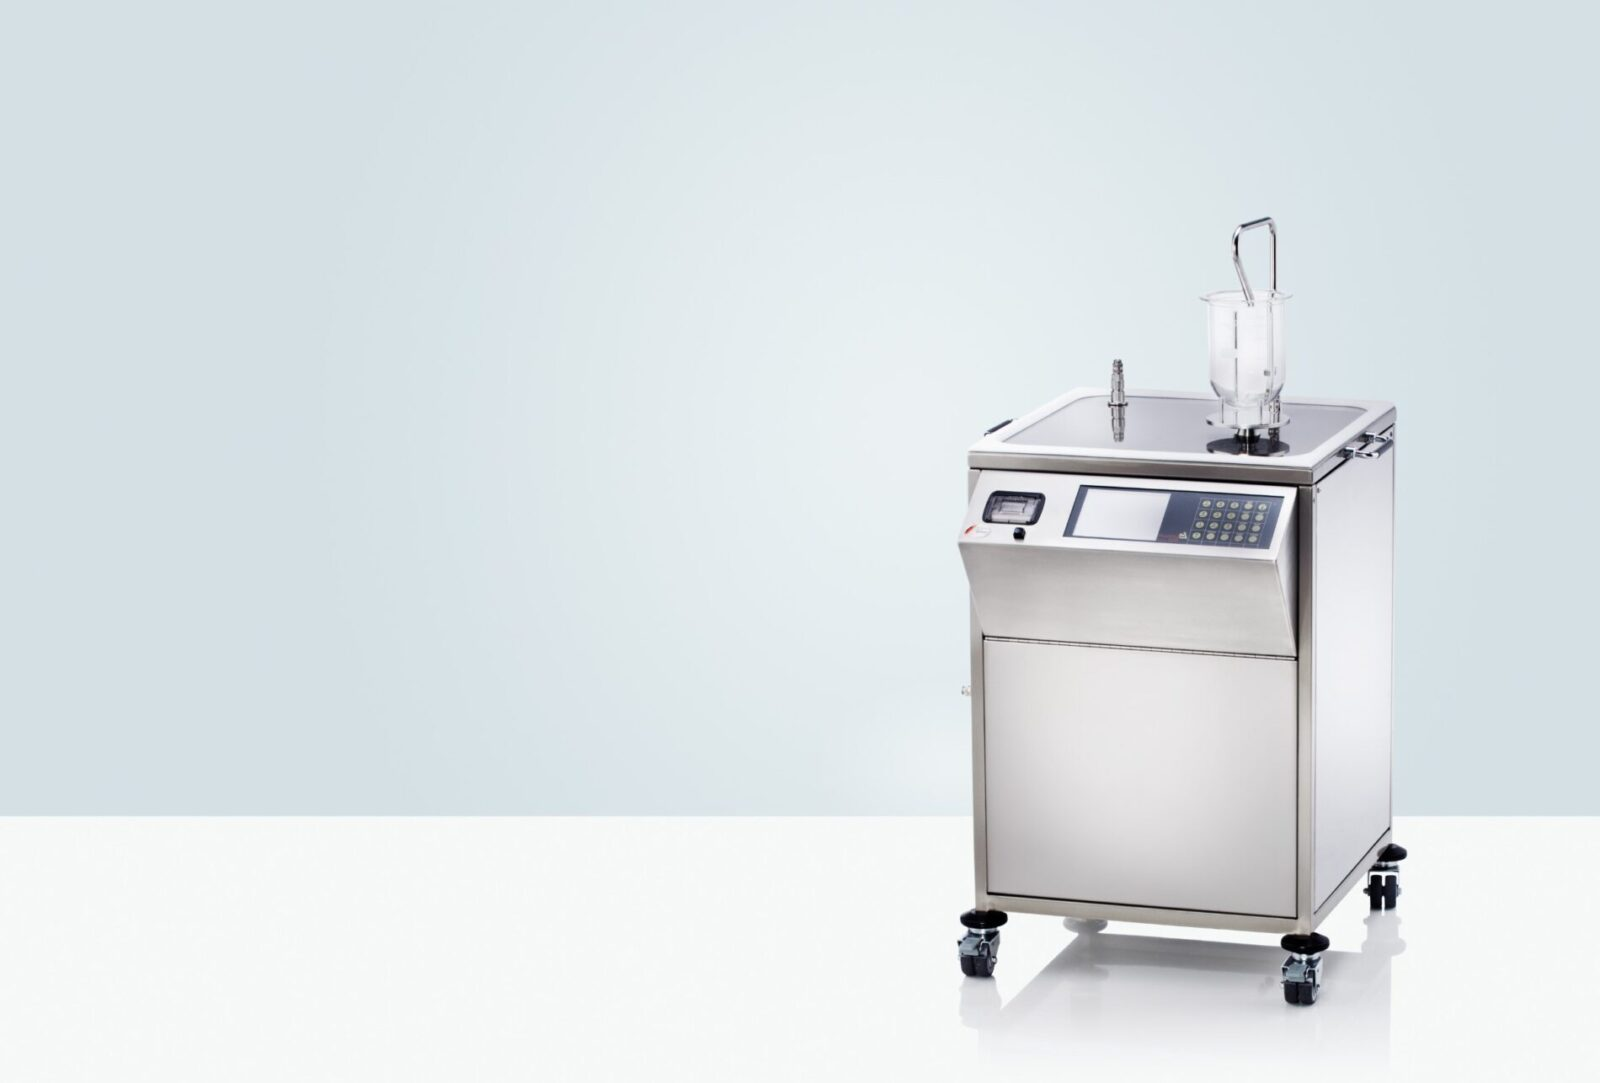 The PT-DDS4 media preparation and degassing system